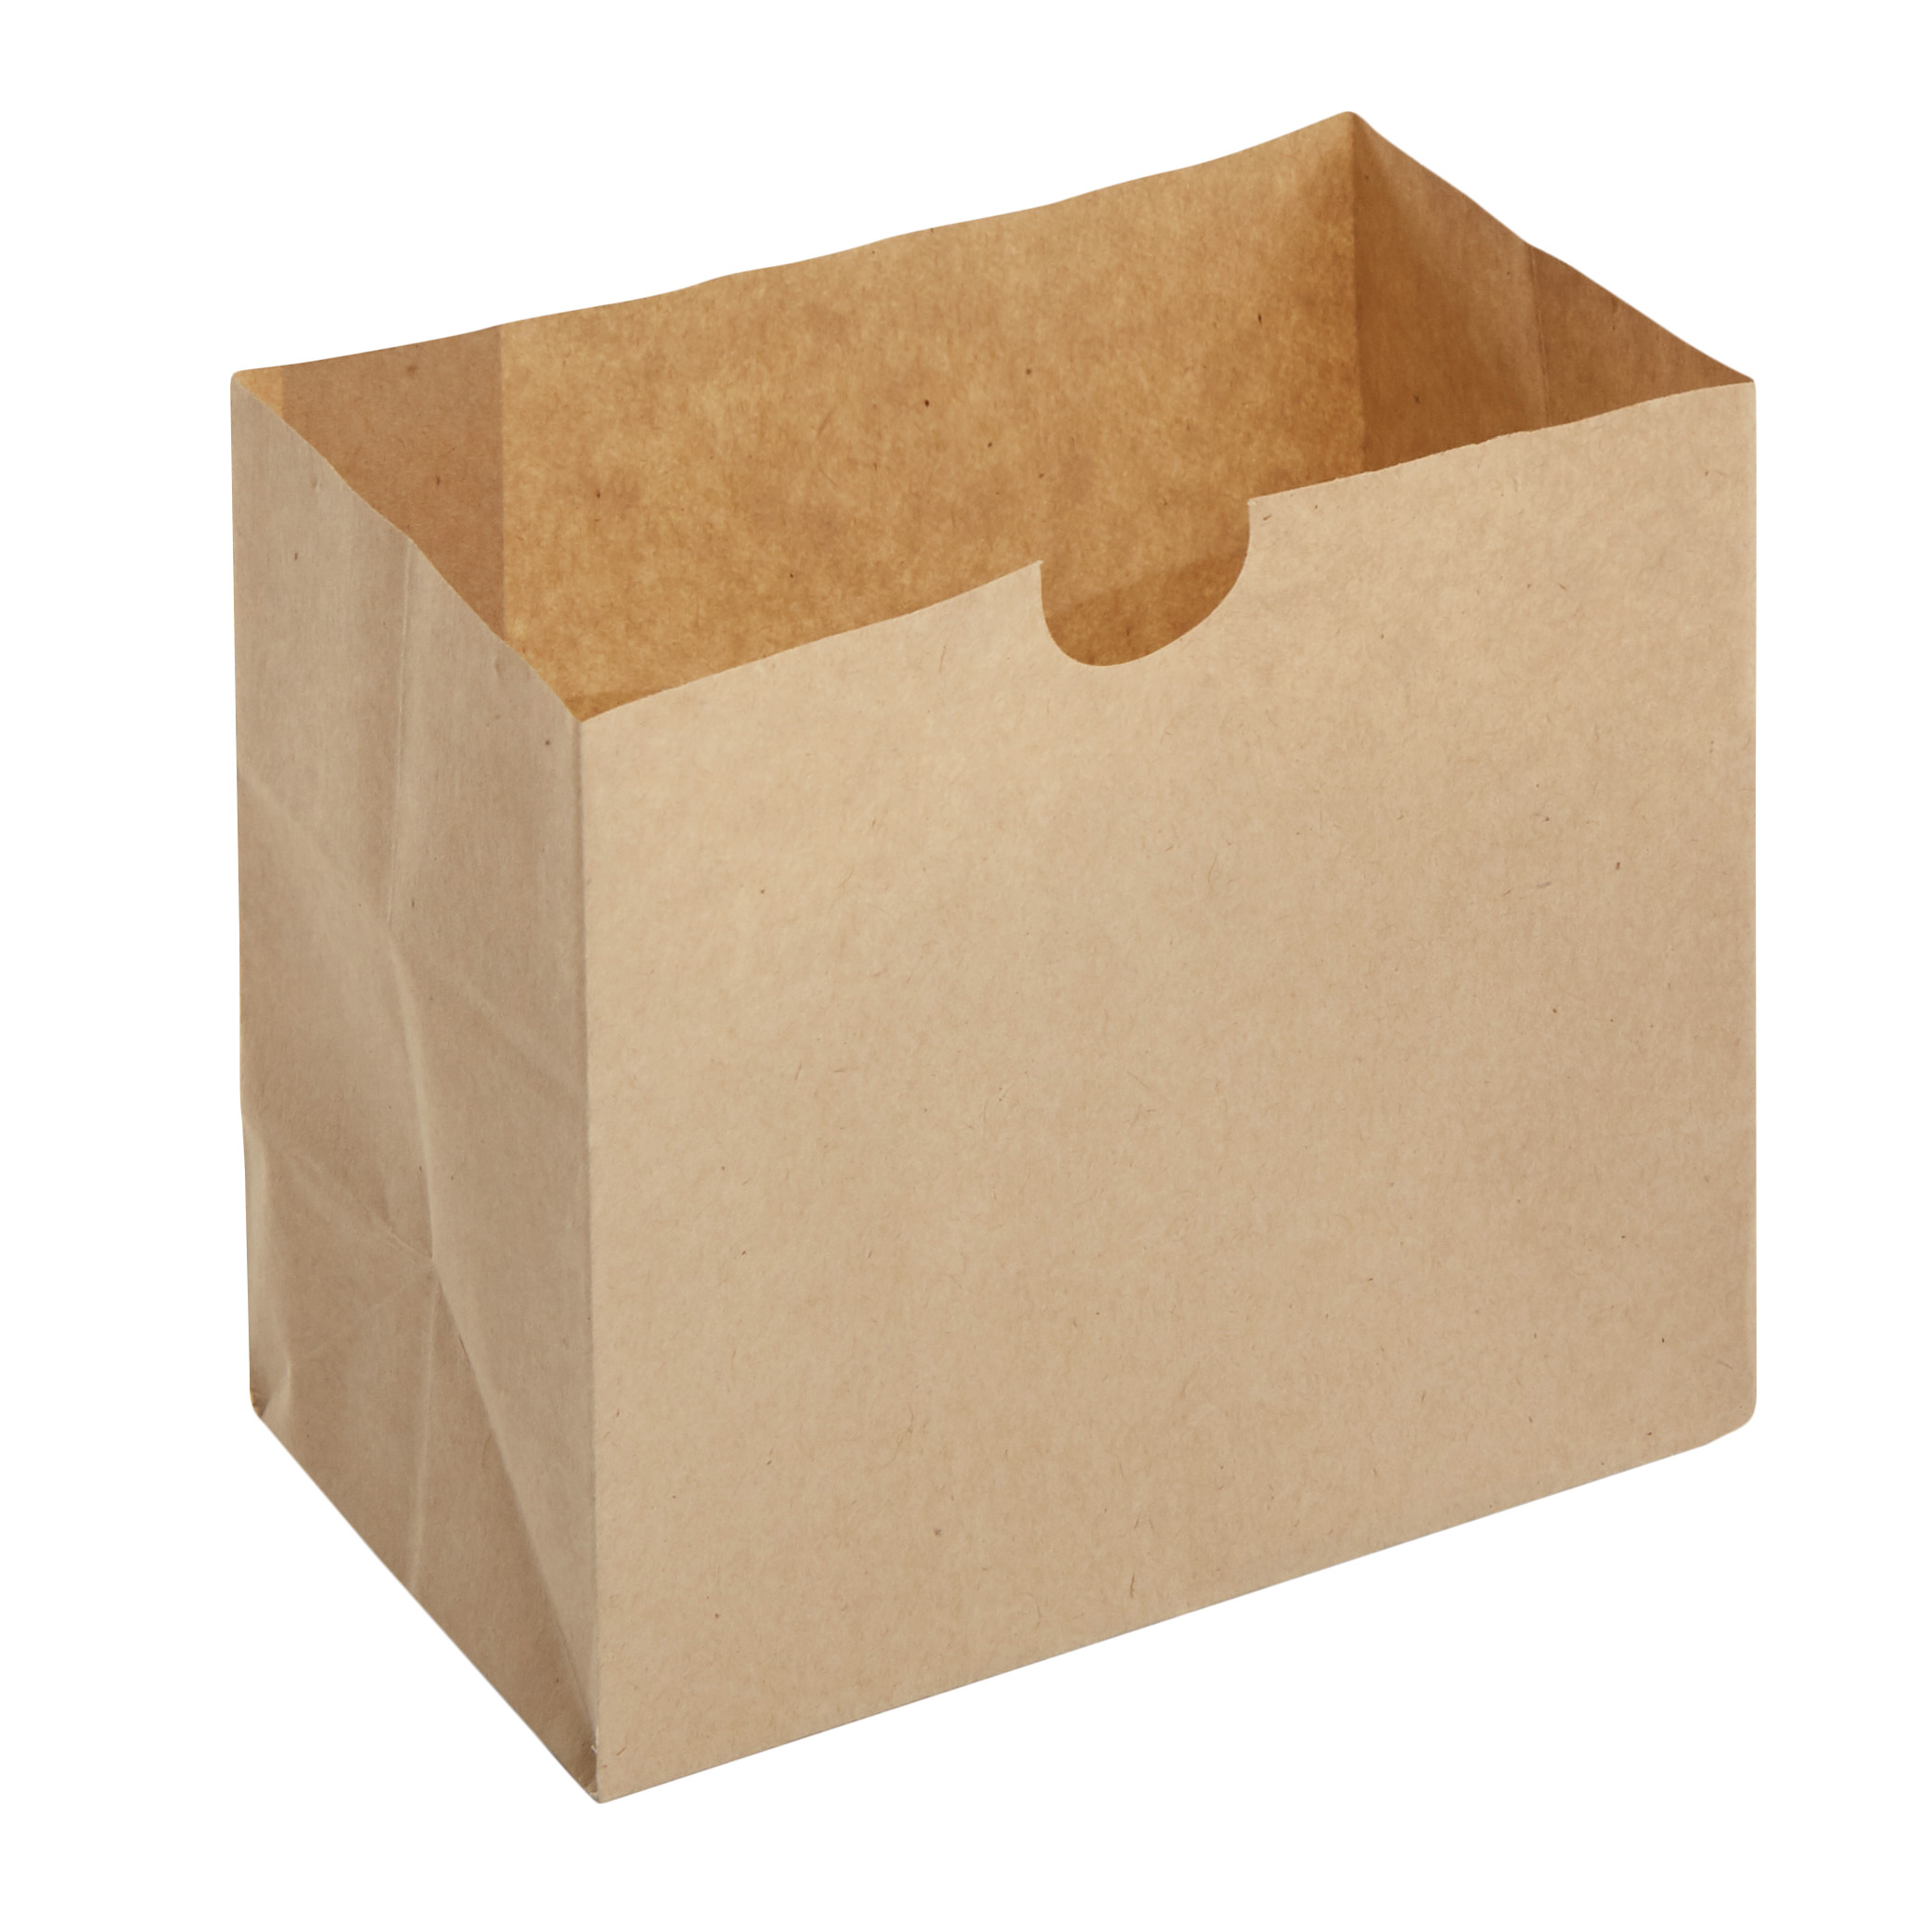 American Metalcraft SBN4 disposable take out container